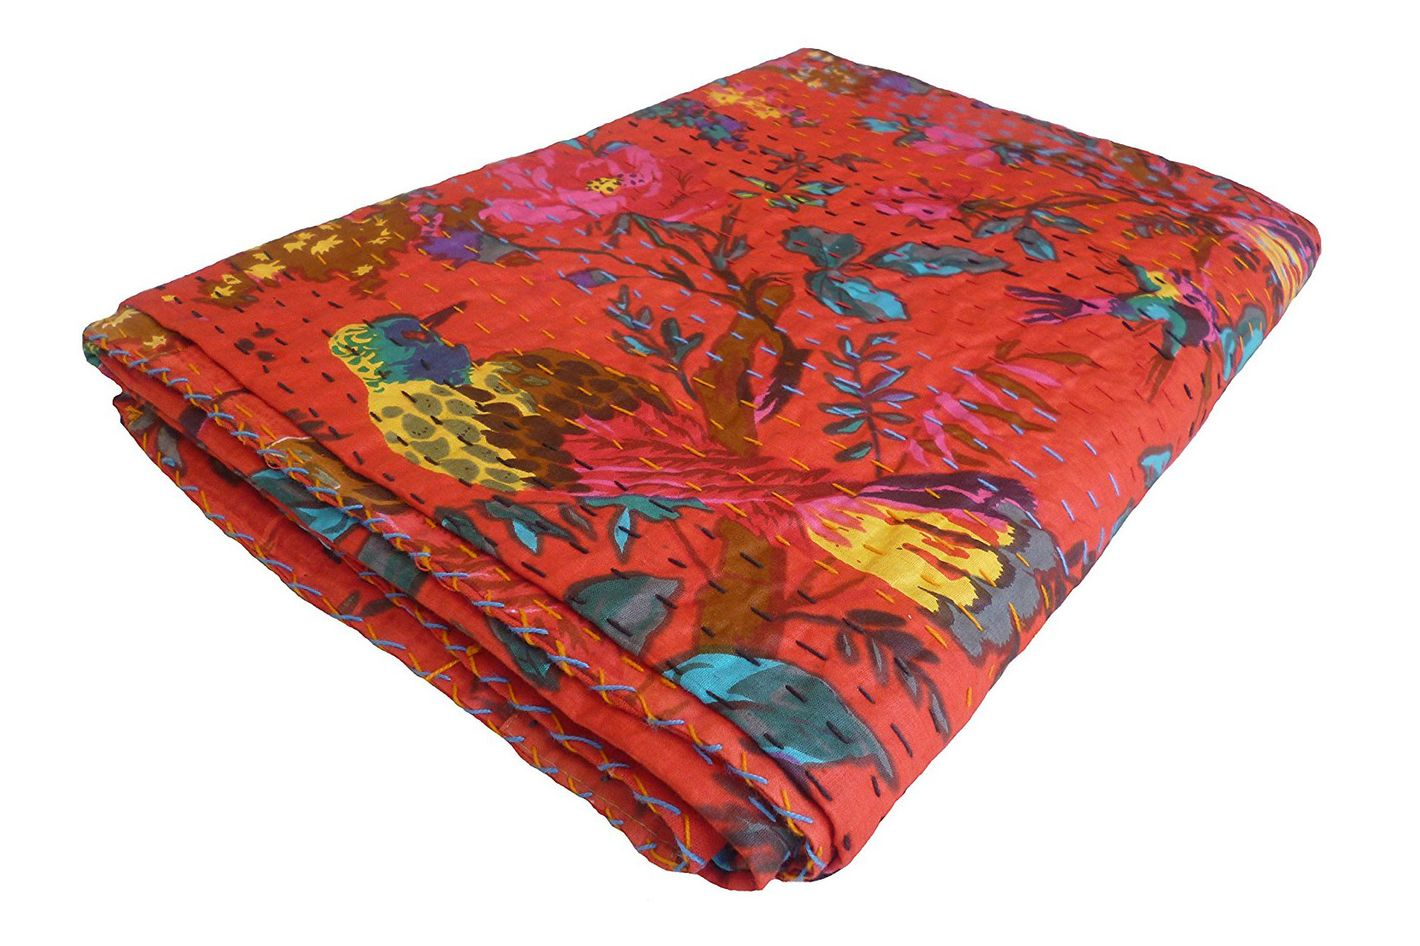 Colors Of Rajasthan Bird Print King Size Kantha Quilt